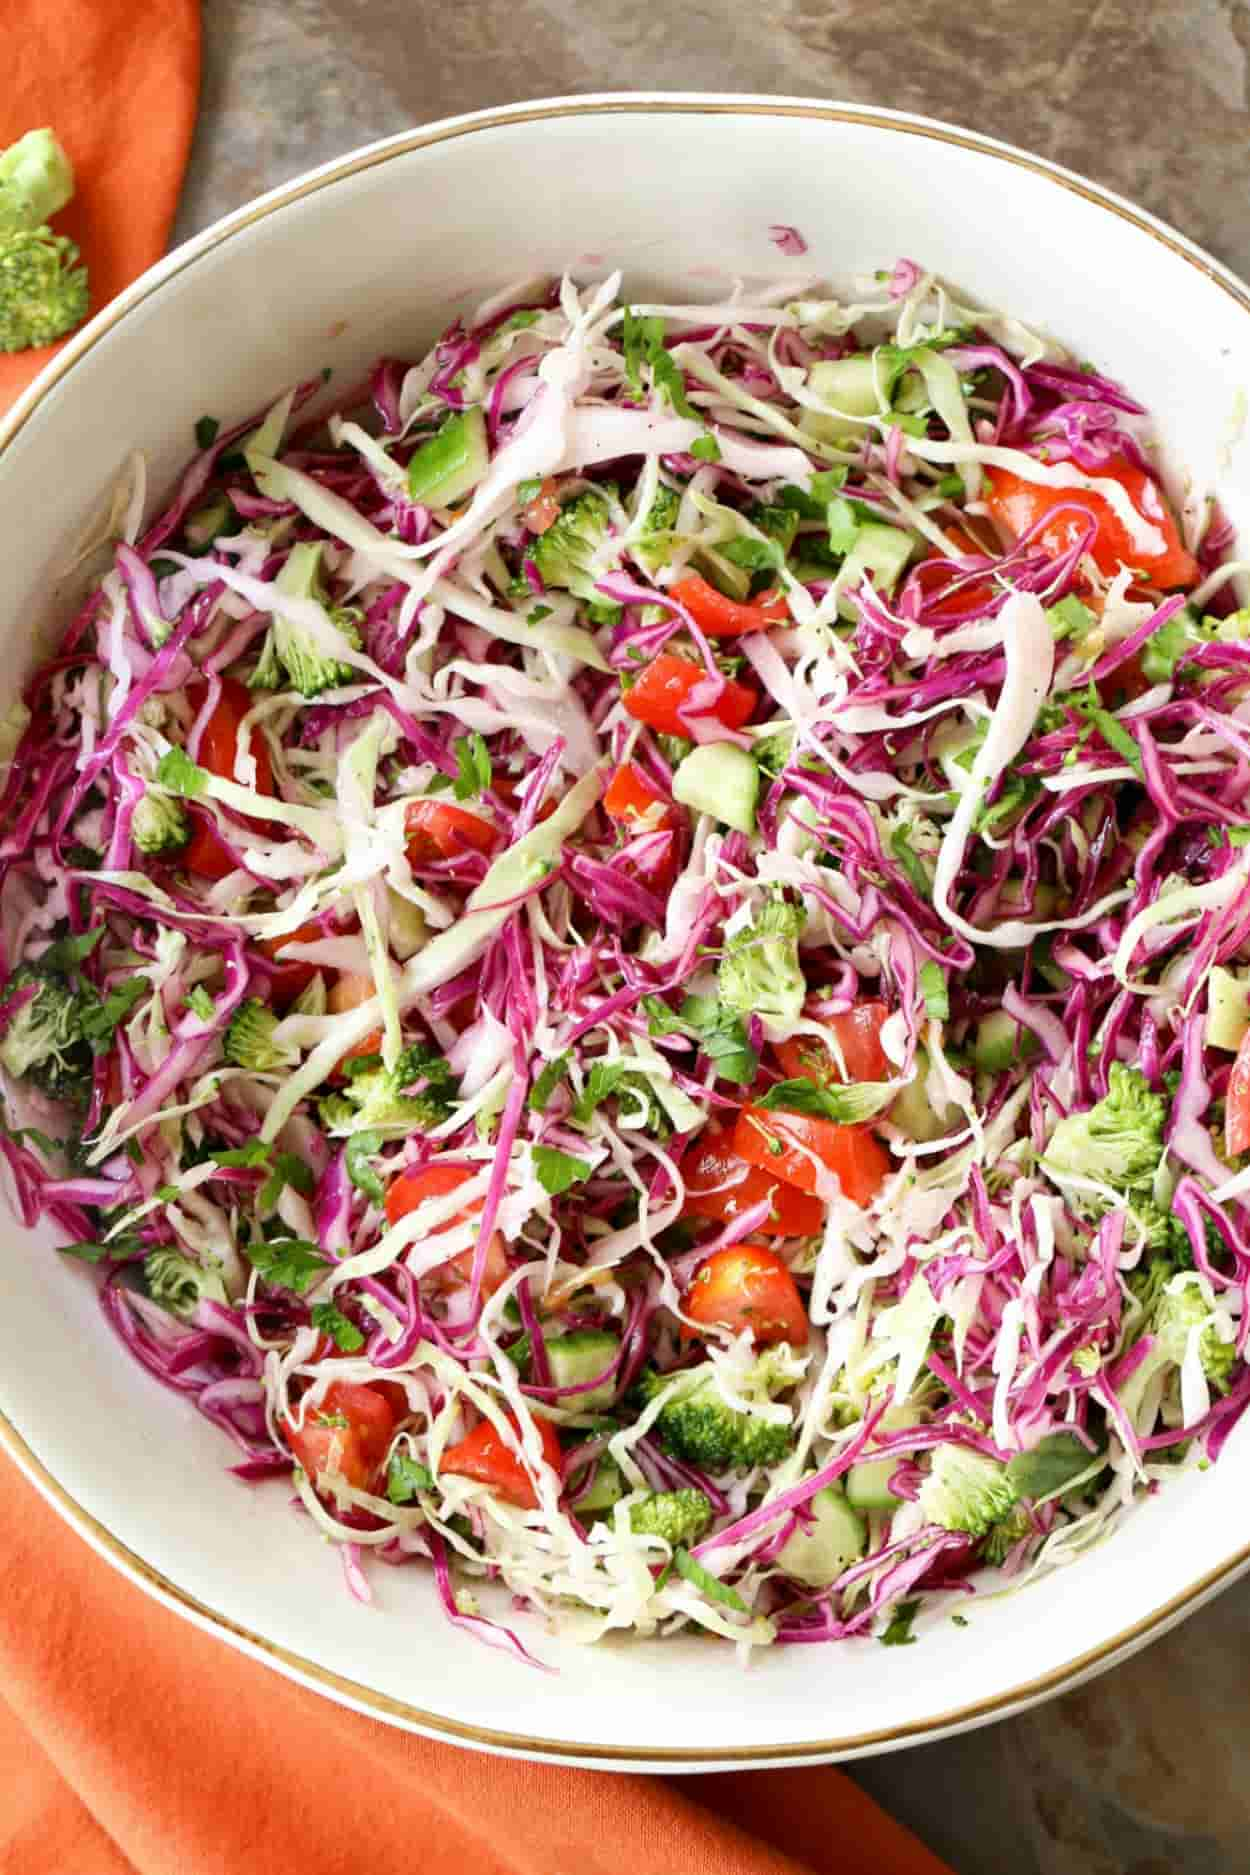 Salad with cabbage and corn: a variety of flavors